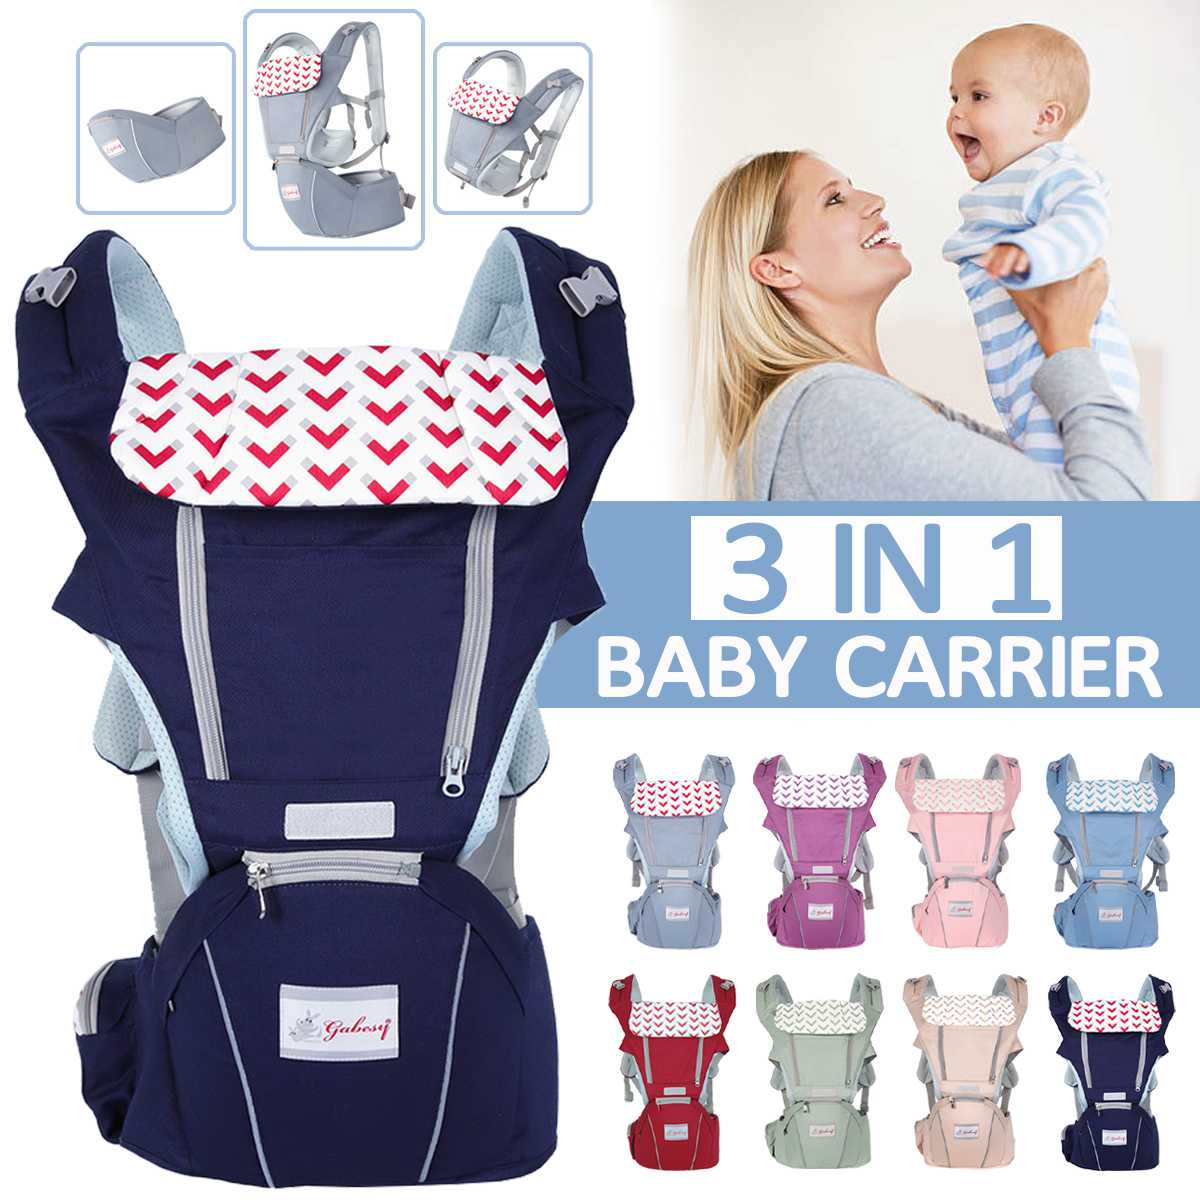 0 36 Months Breathable Front Facing Baby Carrier Waist Stool 3 in 1 Infant Comfortable Sling Backpack Pouch Wraps Baby Kangaroo